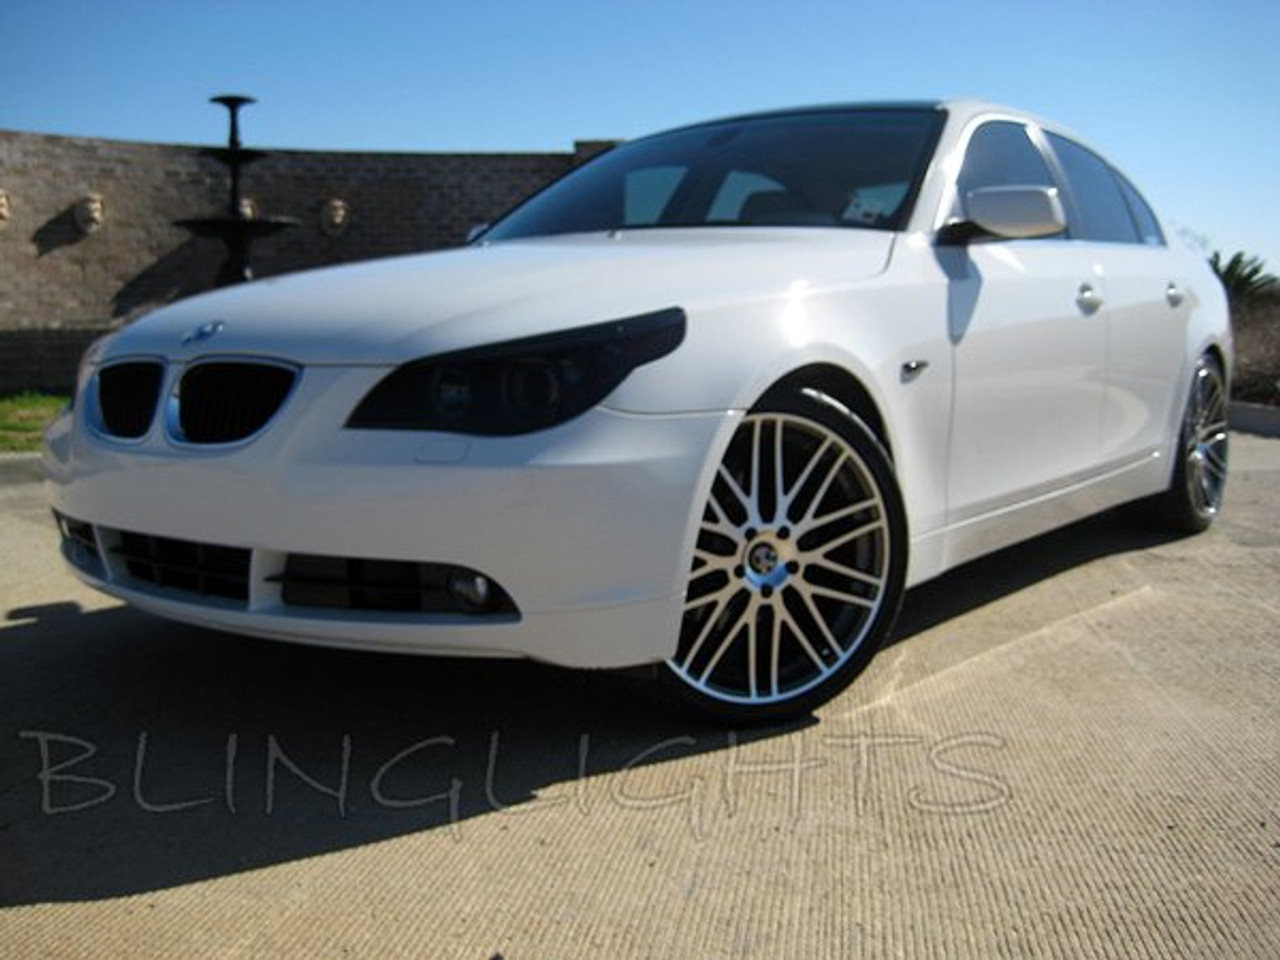 Bmw 5 Series E39 E60 E61 F10 F11 Tinted Smoked Headlamps Headlights Protection Overlays Film Blinglights Com